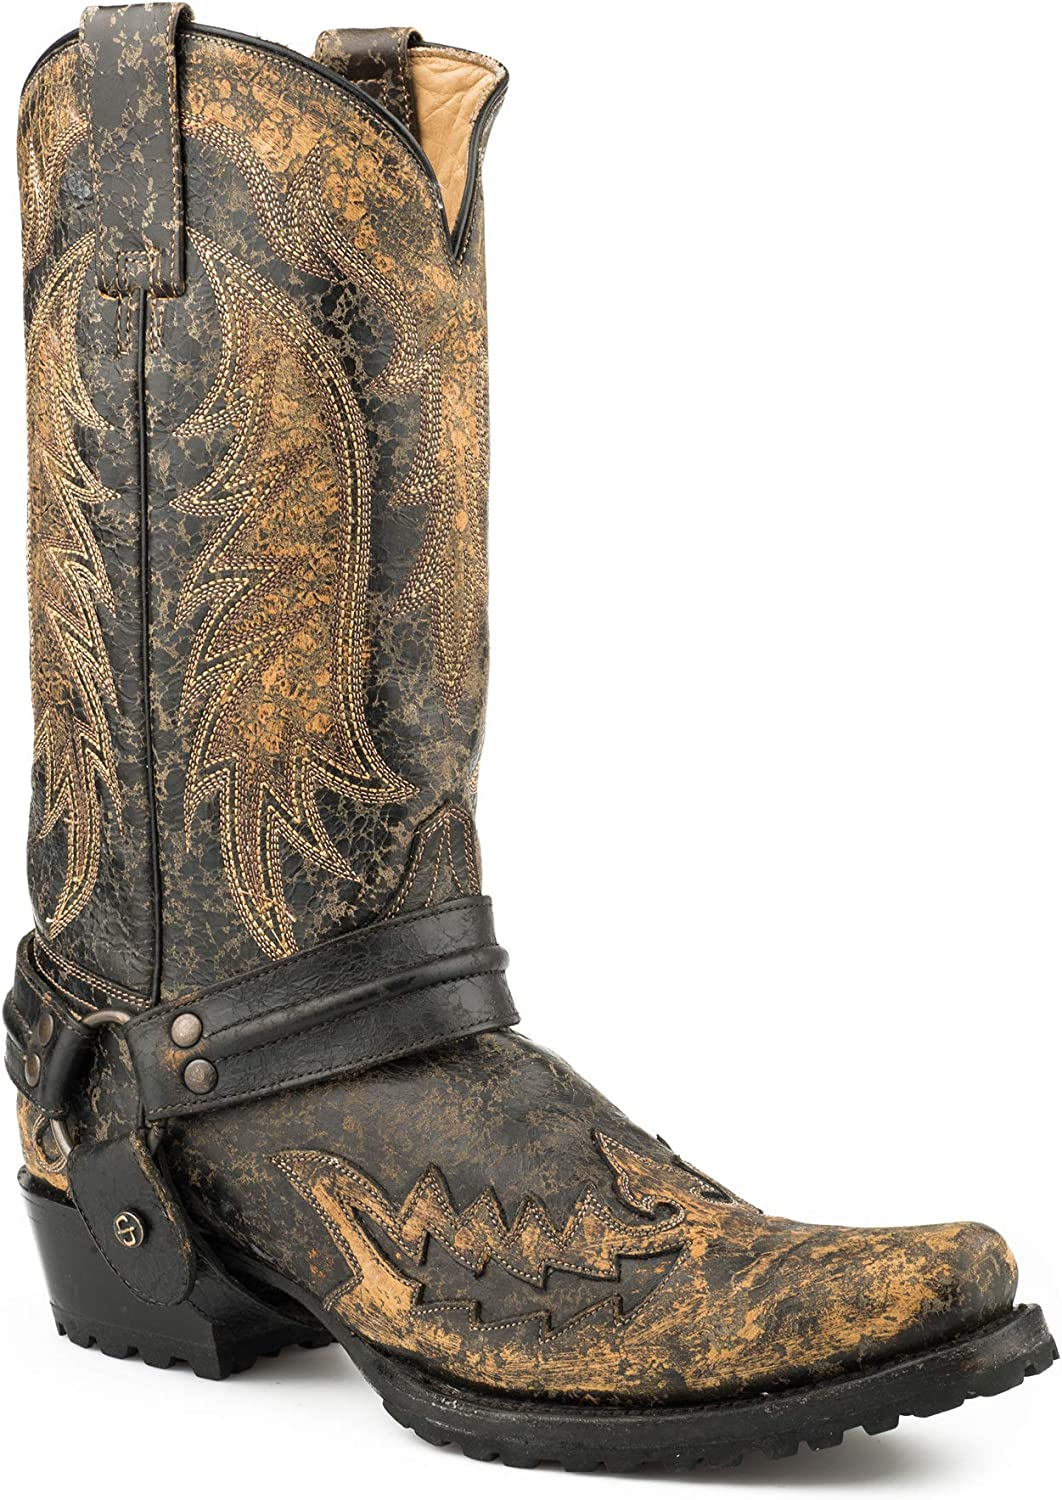 mens distressed black leather boots